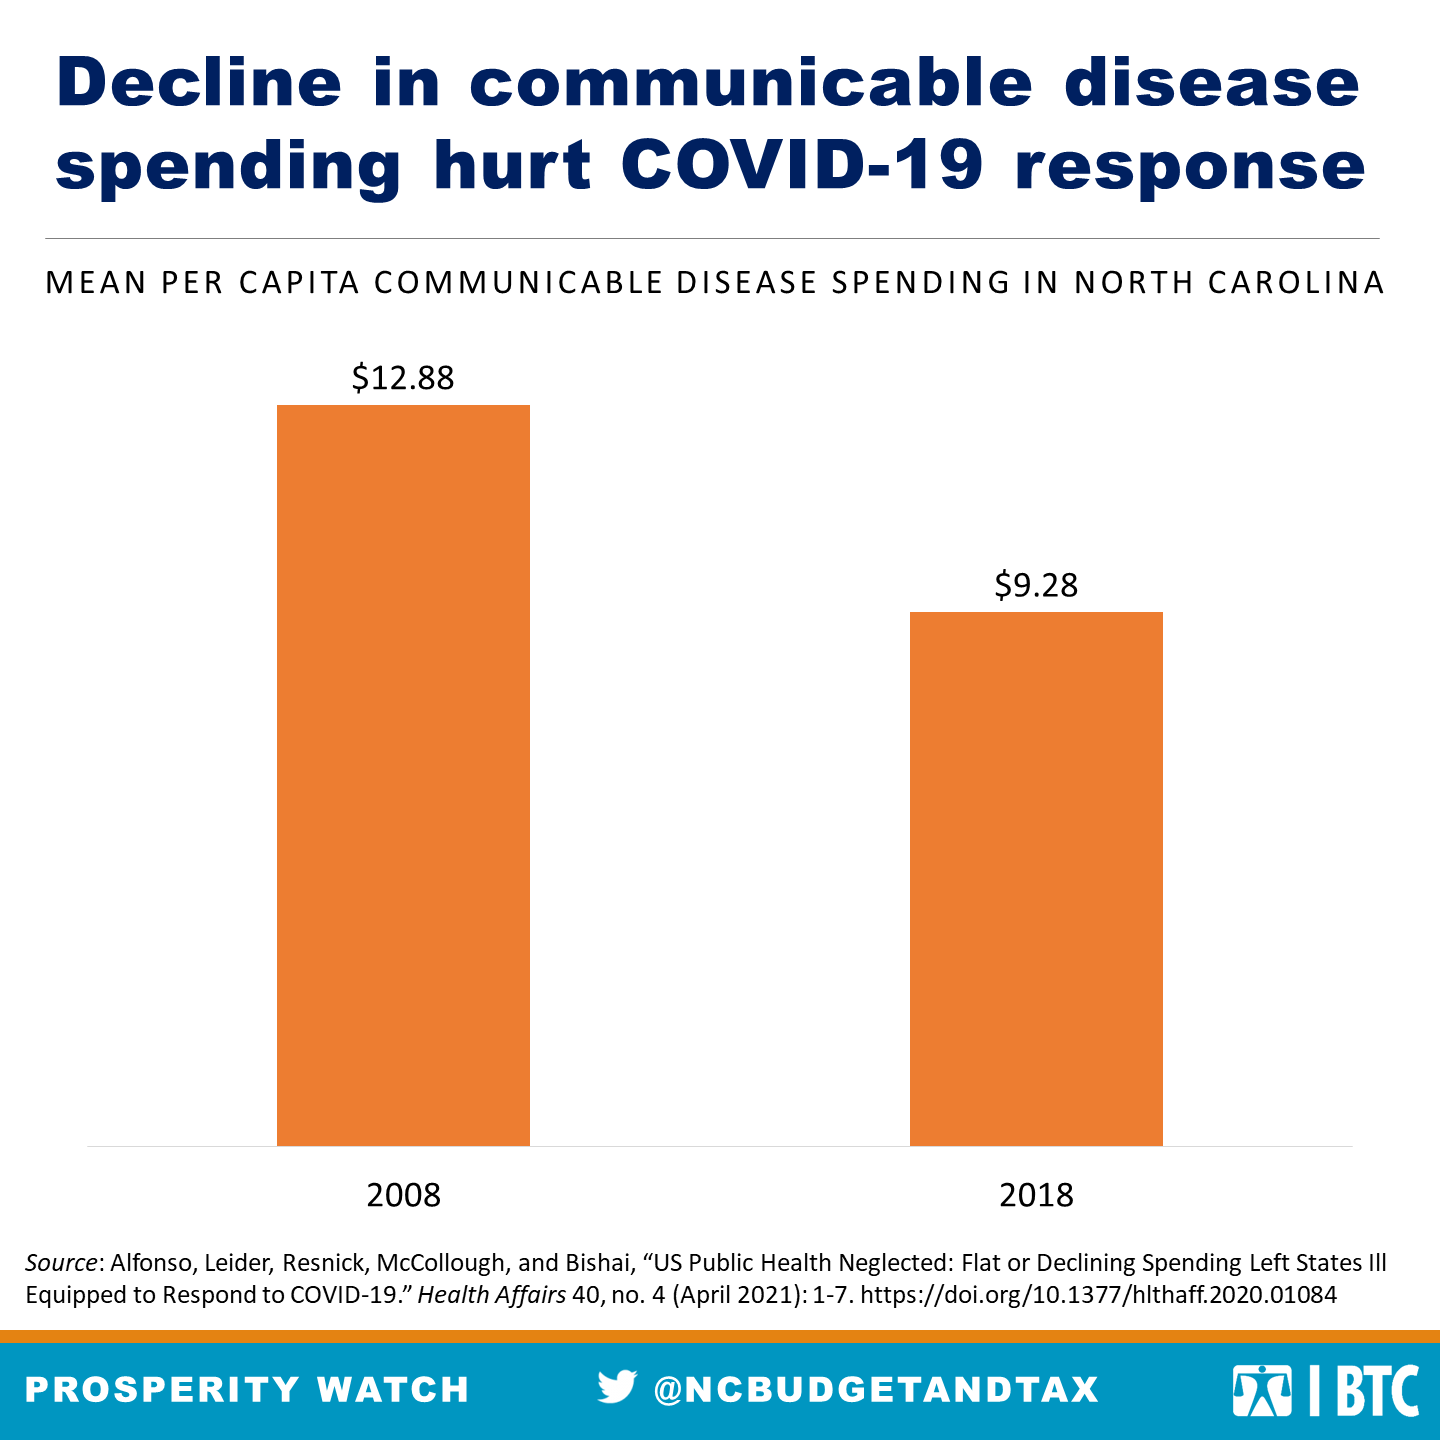 Chart showing decline in communicable disease spending hurt COVID-19 response